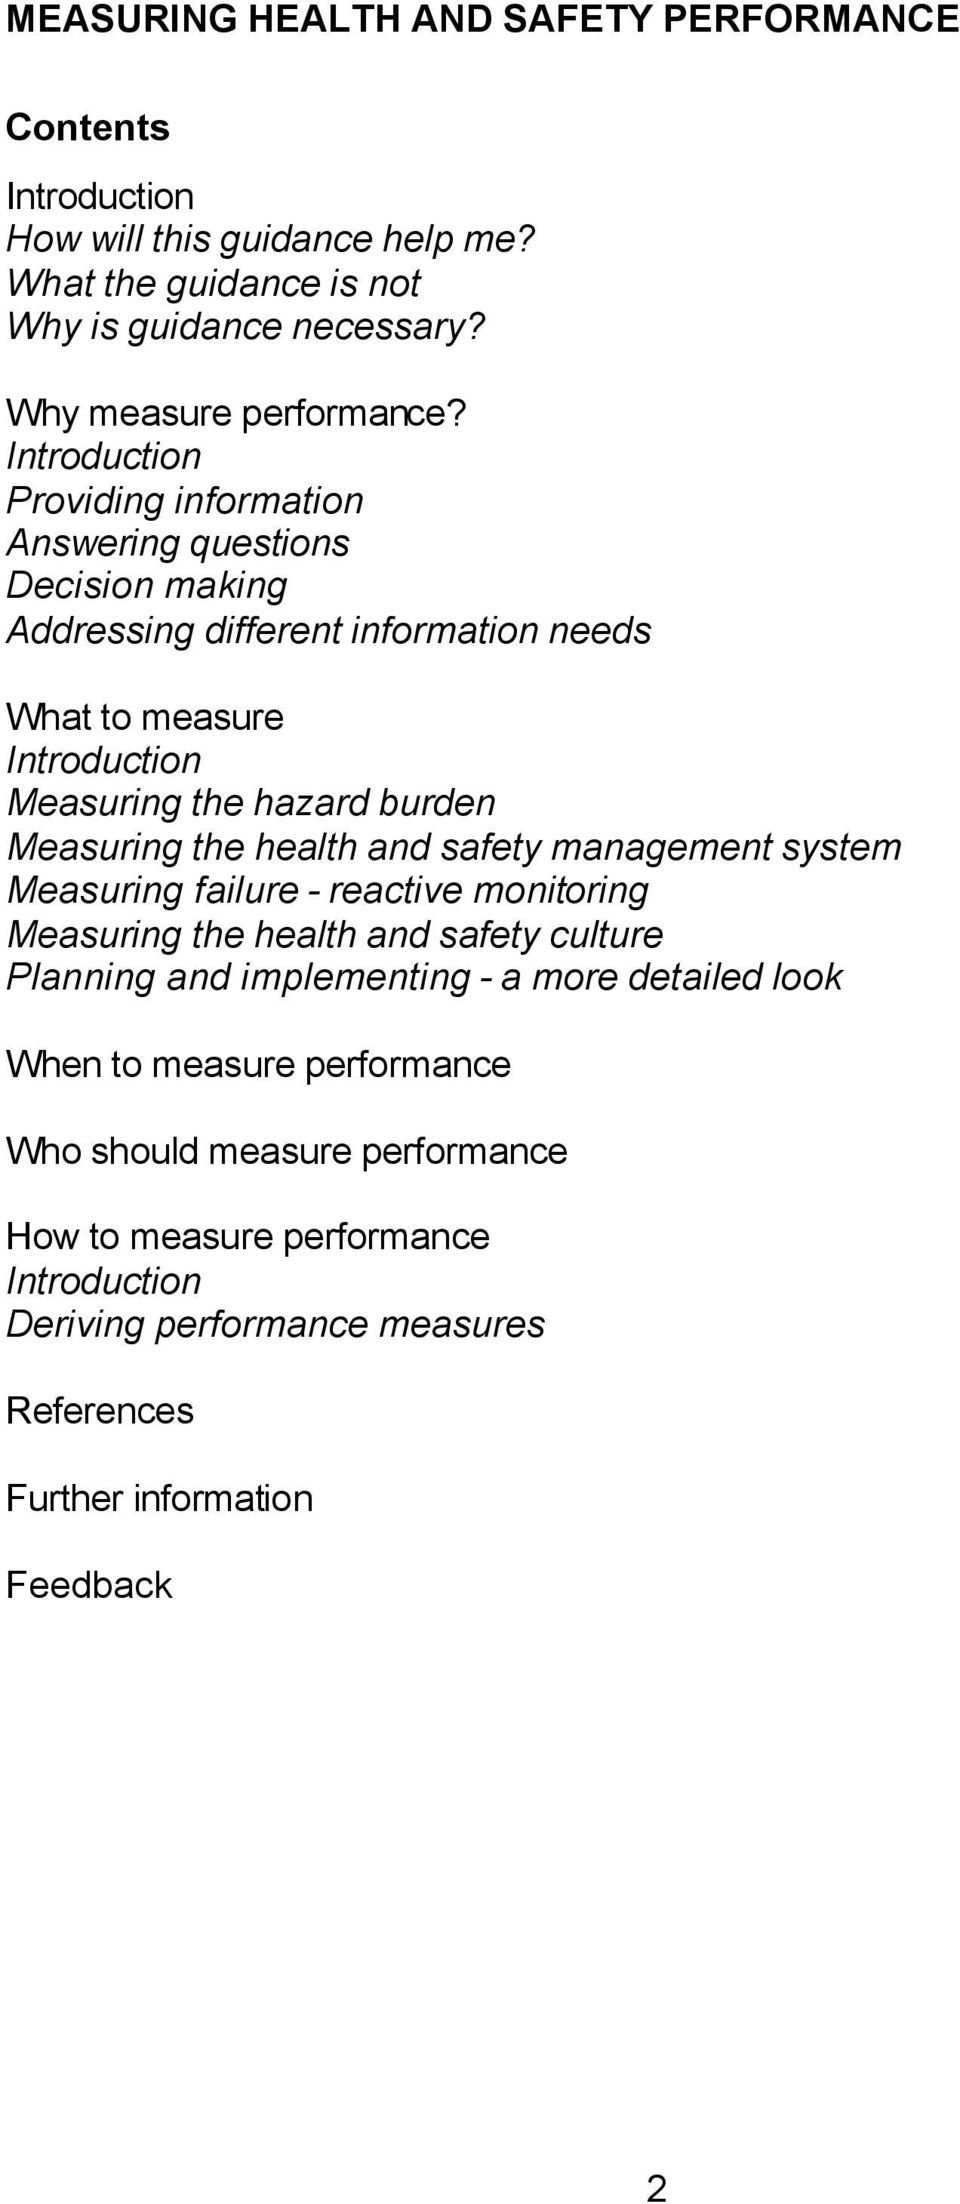 Measuring the health and safety management system Measuring failure - reactive monitoring Measuring the health and safety culture Planning and implementing - a more